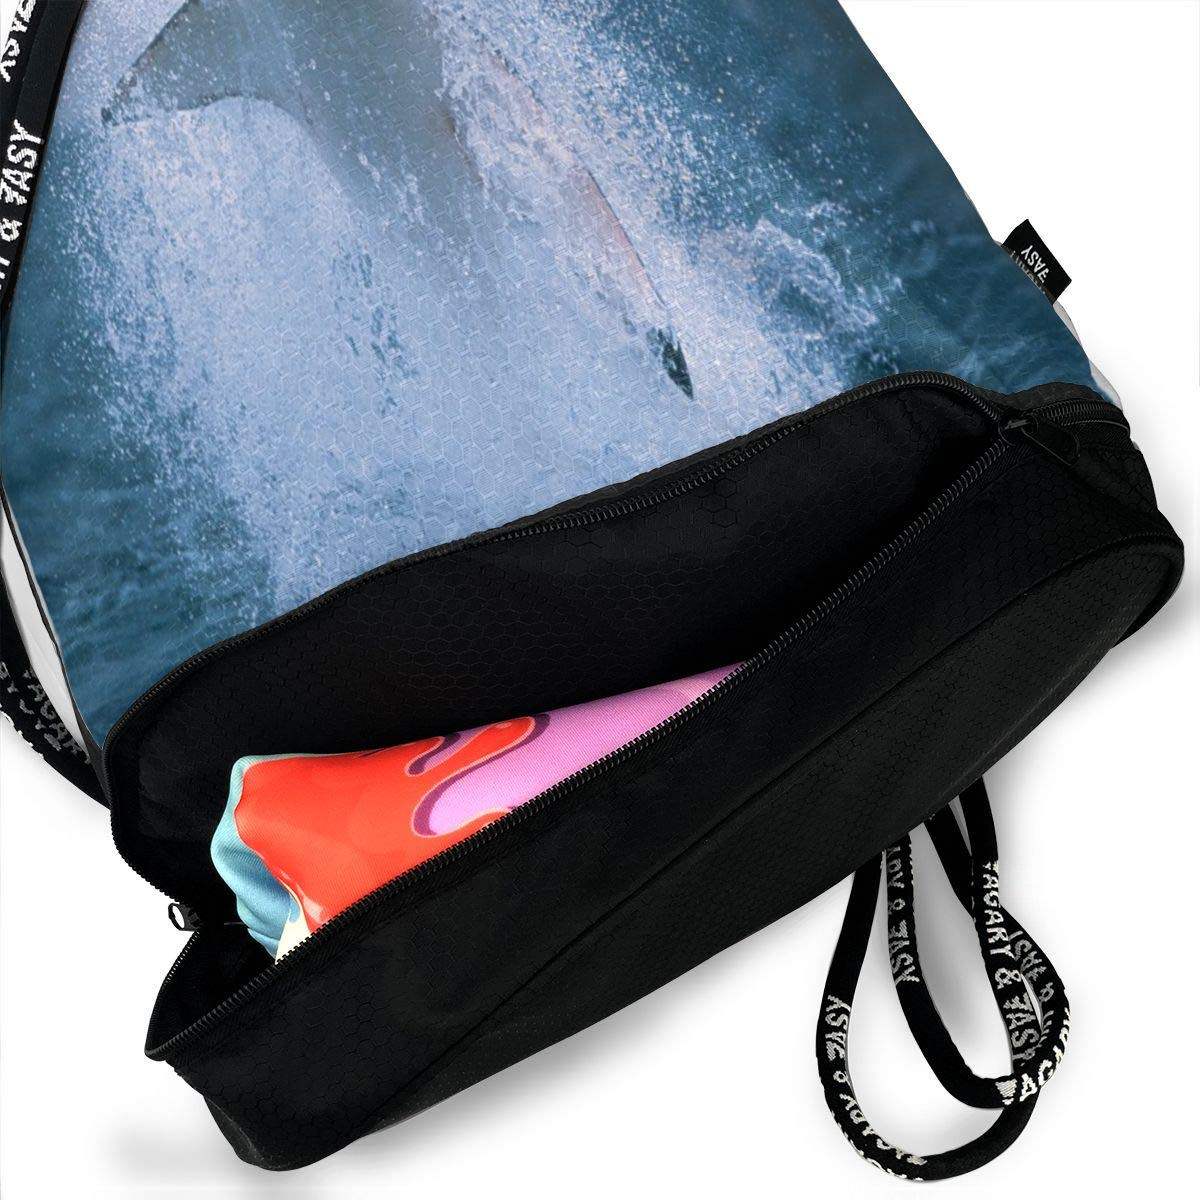 Unisex Bundle Backpack Shark Travel Durable Large Space Fantastic Waterproof Drawstring Bag